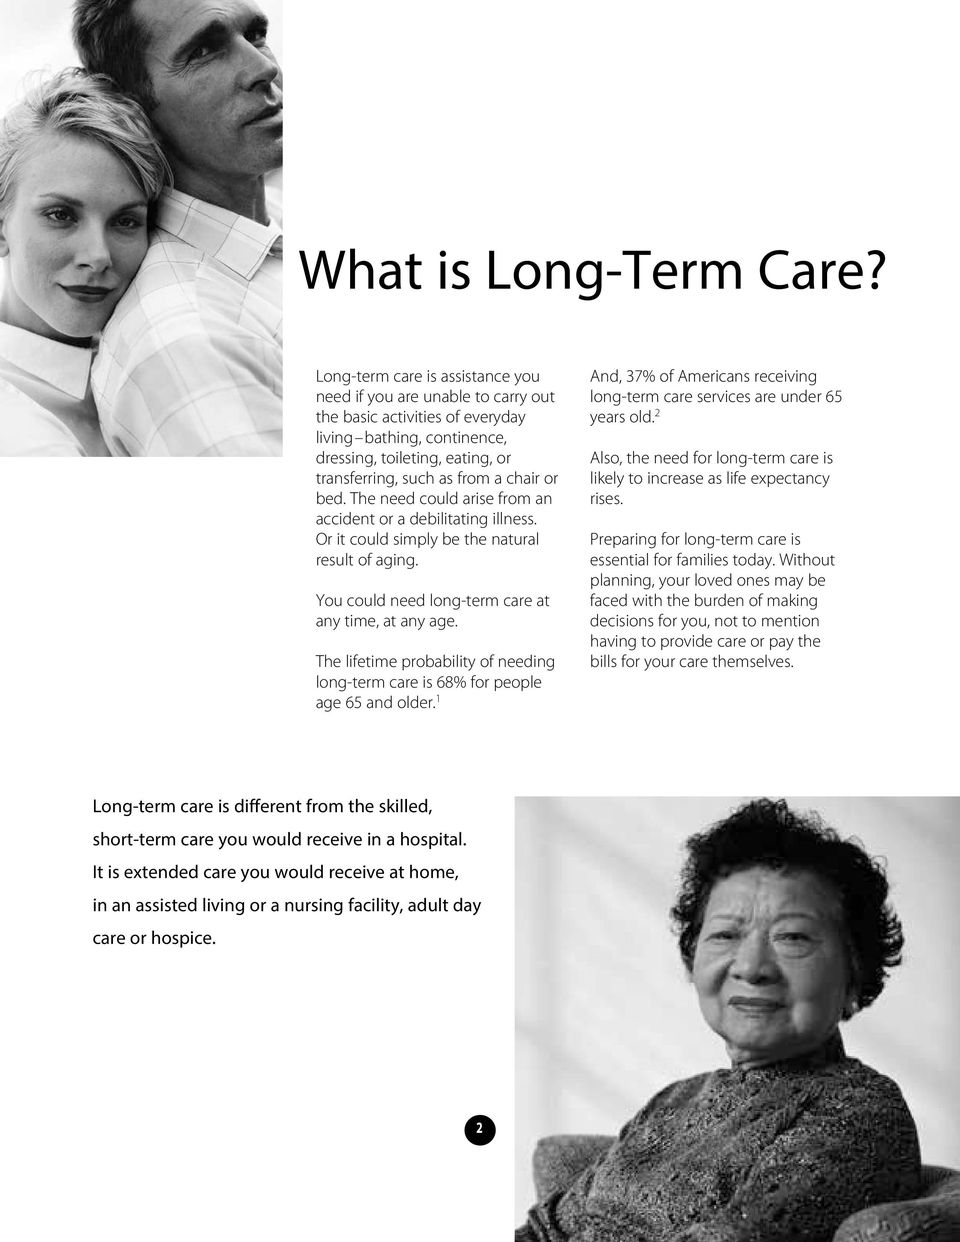 bed. The need could arise from an accident or a debilitating illness. Or it could simply be the natural result of aging. You could need long-term care at any time, at any age.